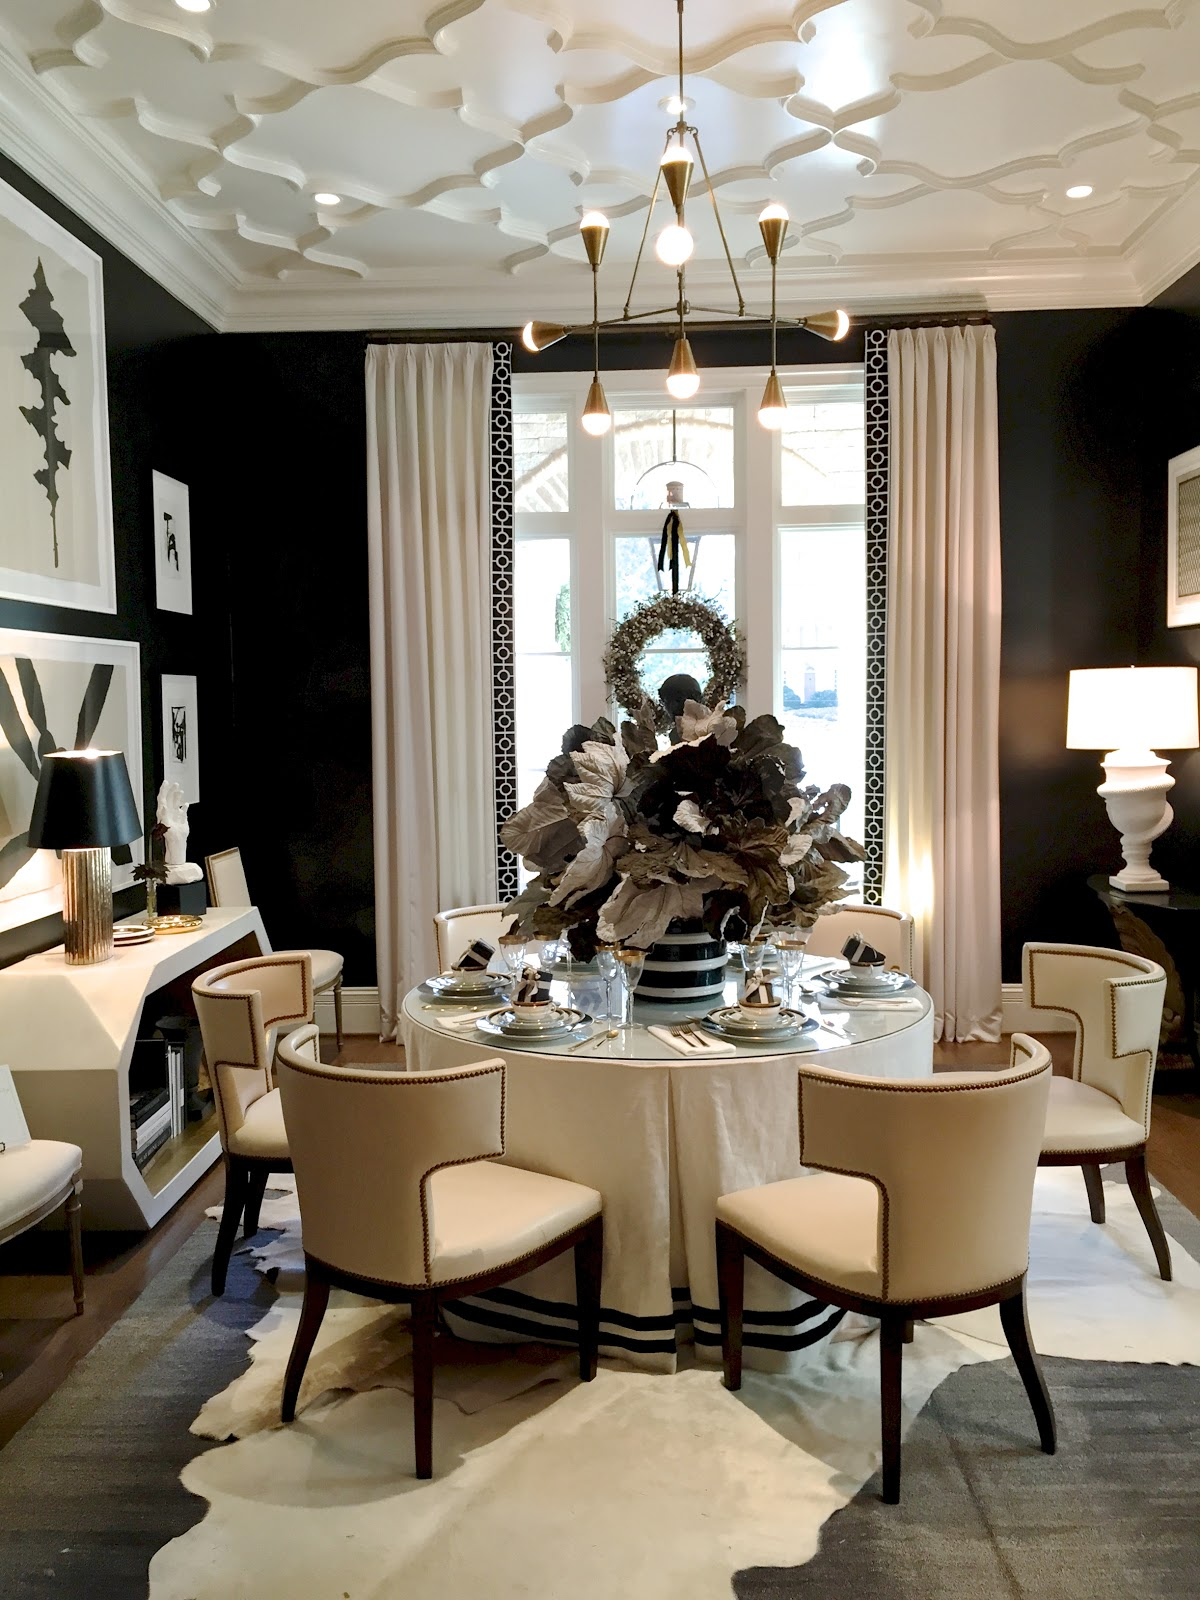 Sophisticated dining room ideas for your home design - Black walls in dining room ...